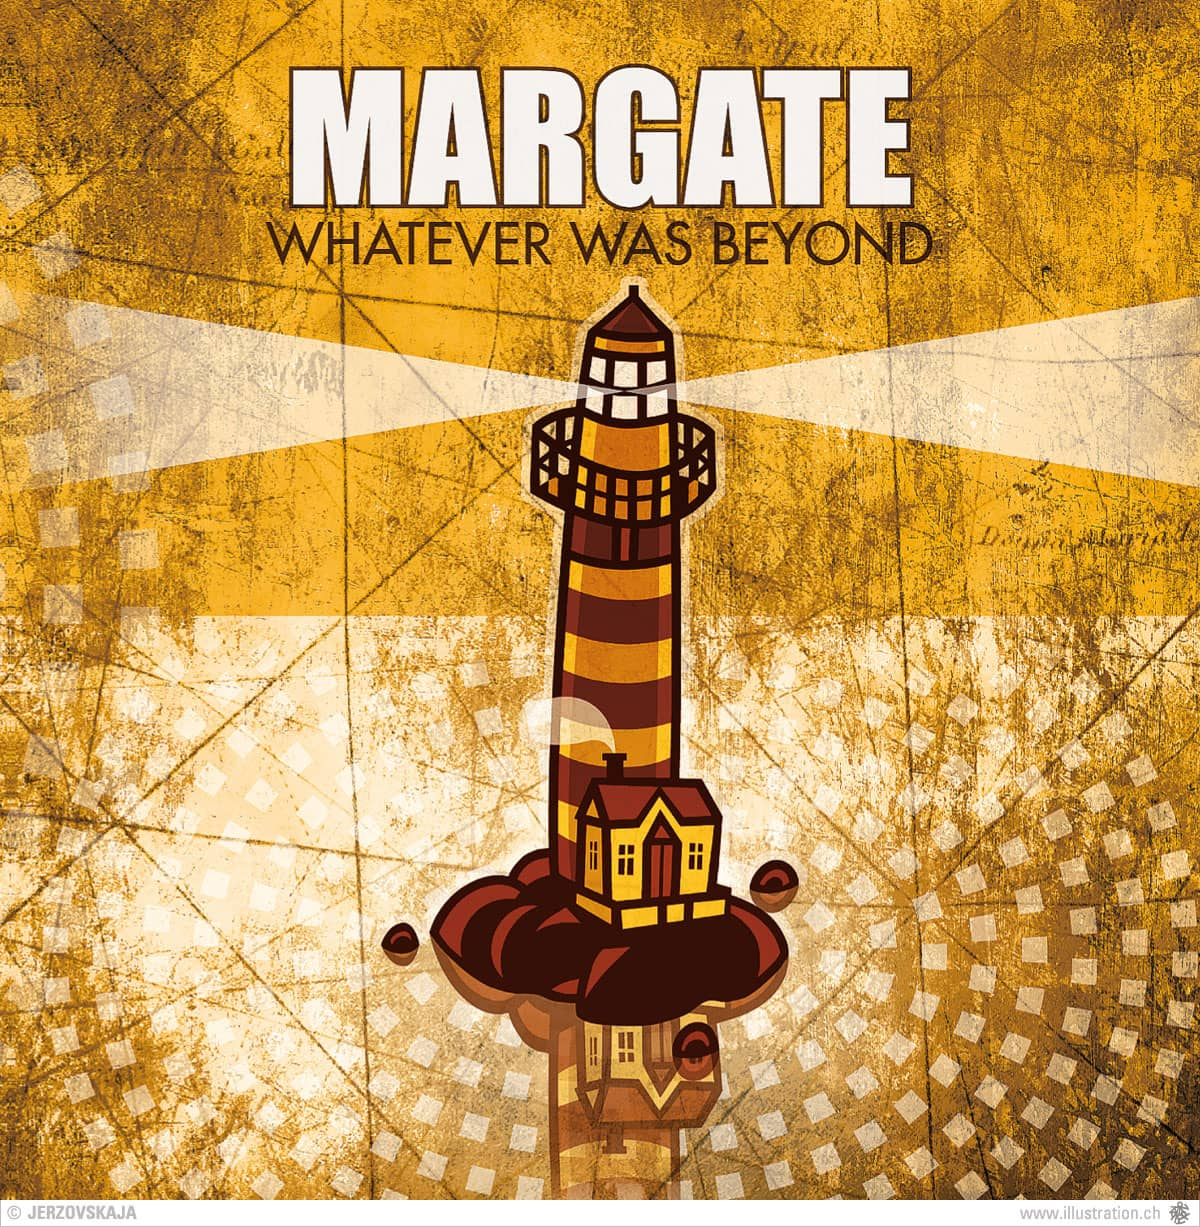 Margate CD Cover - Illustration, Grafidesign und Printproduktion: Jerzovskaja  (Vector illustration drawn with Adobe Illustrator)